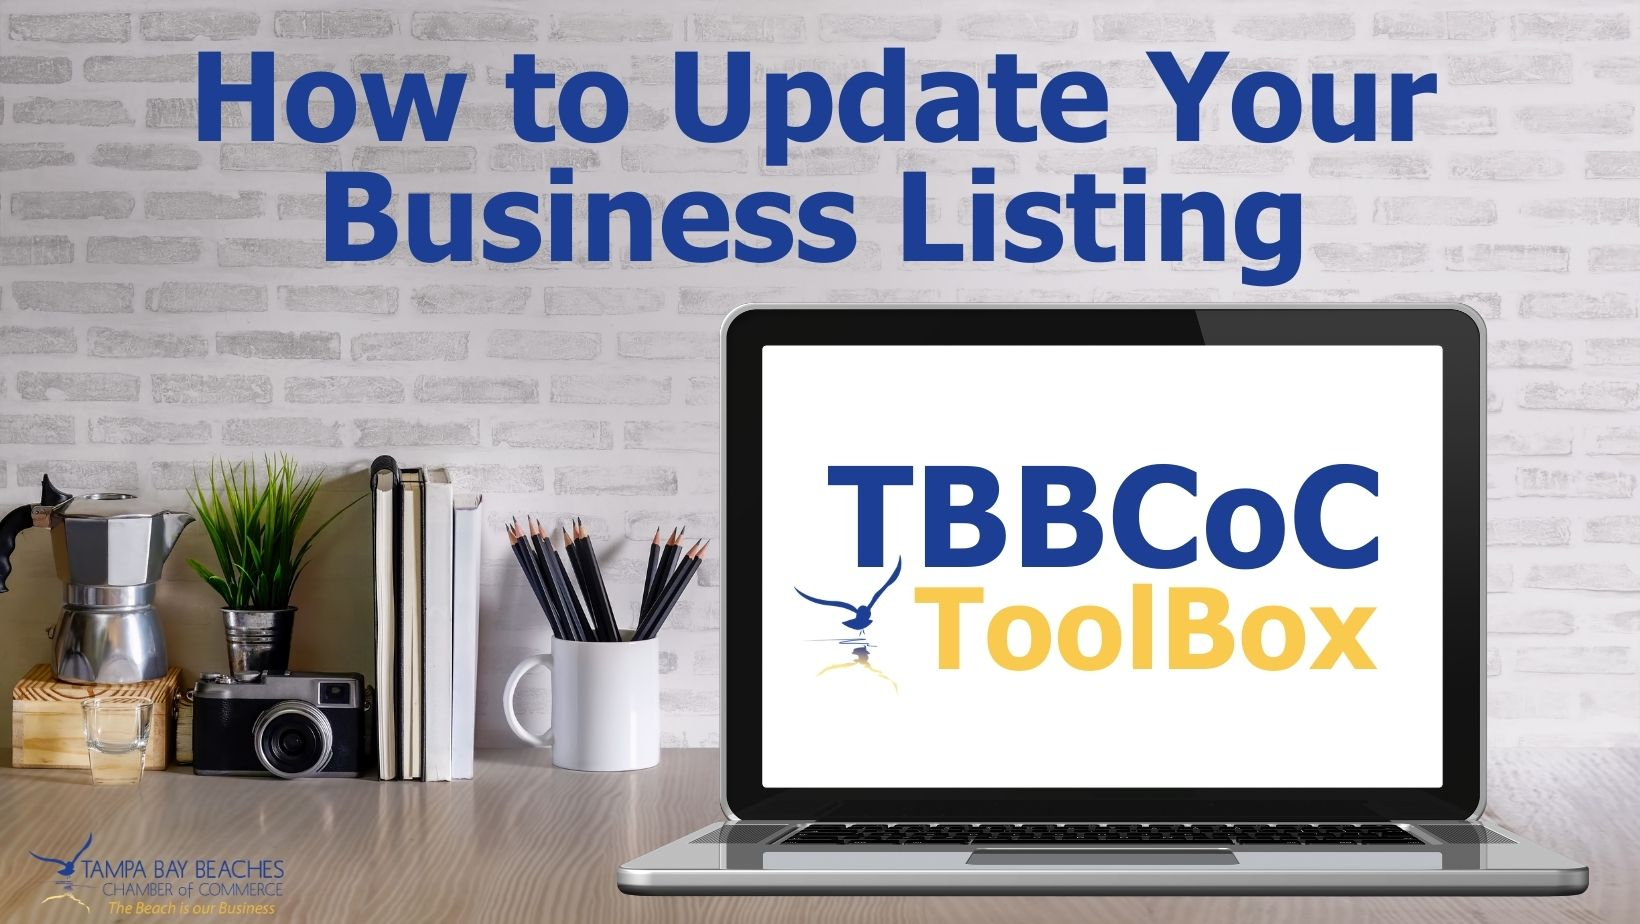 How to Update Your Business Listing